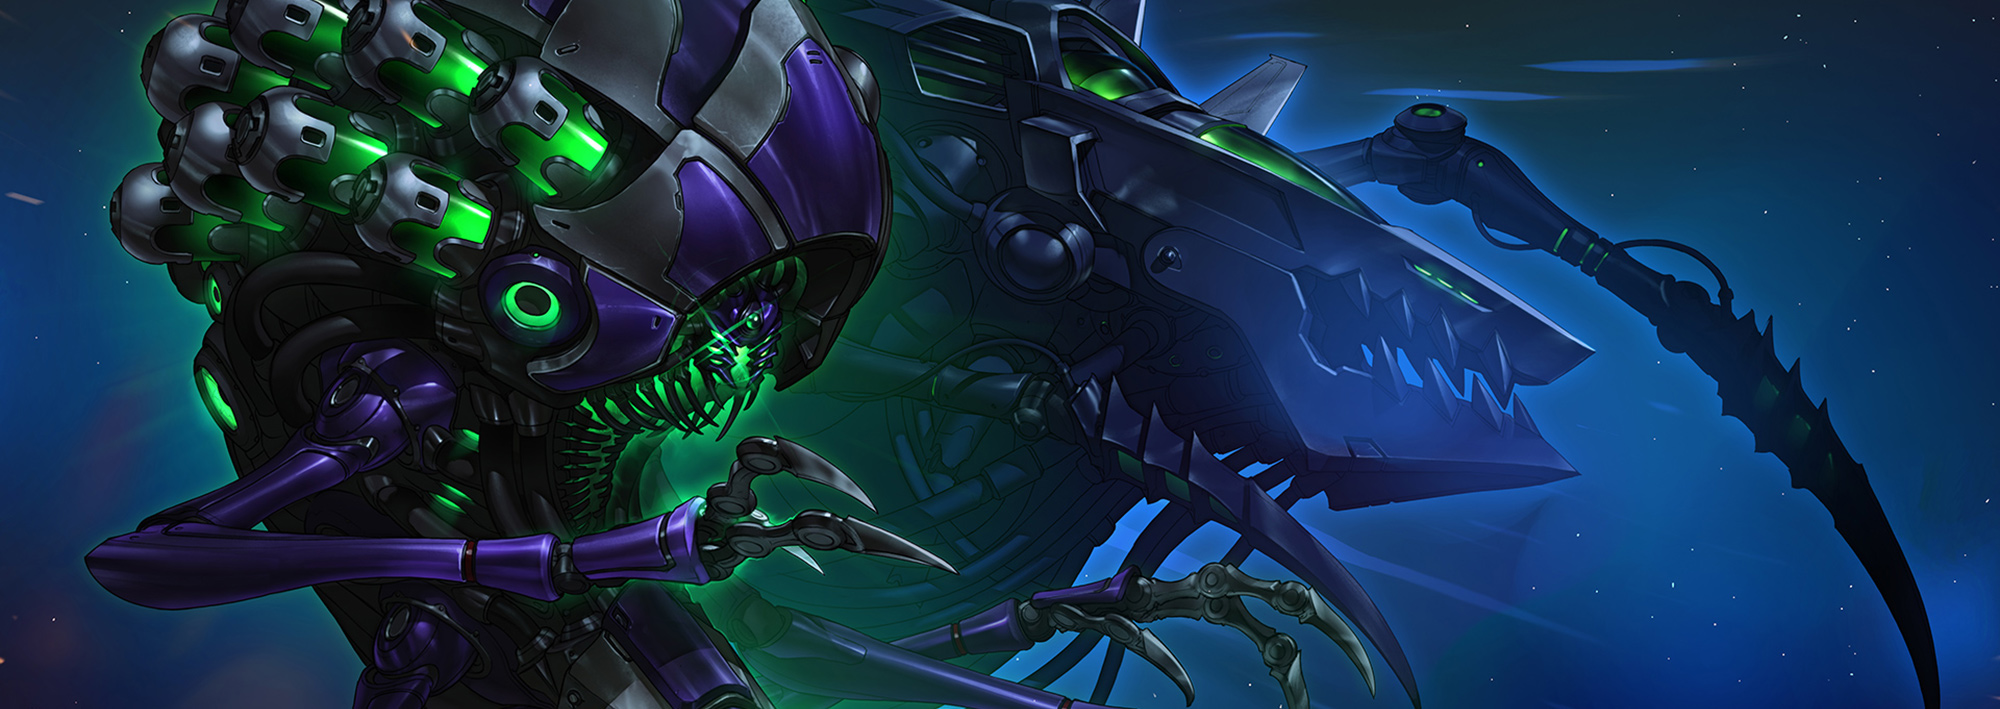 A Symbiotic Connection Tempo Storm Fan S Guide To Abathur Heroes Of The Storm Blizzard News Genji counter picks, synergies and other matchups. tempo storm fan s guide to abathur